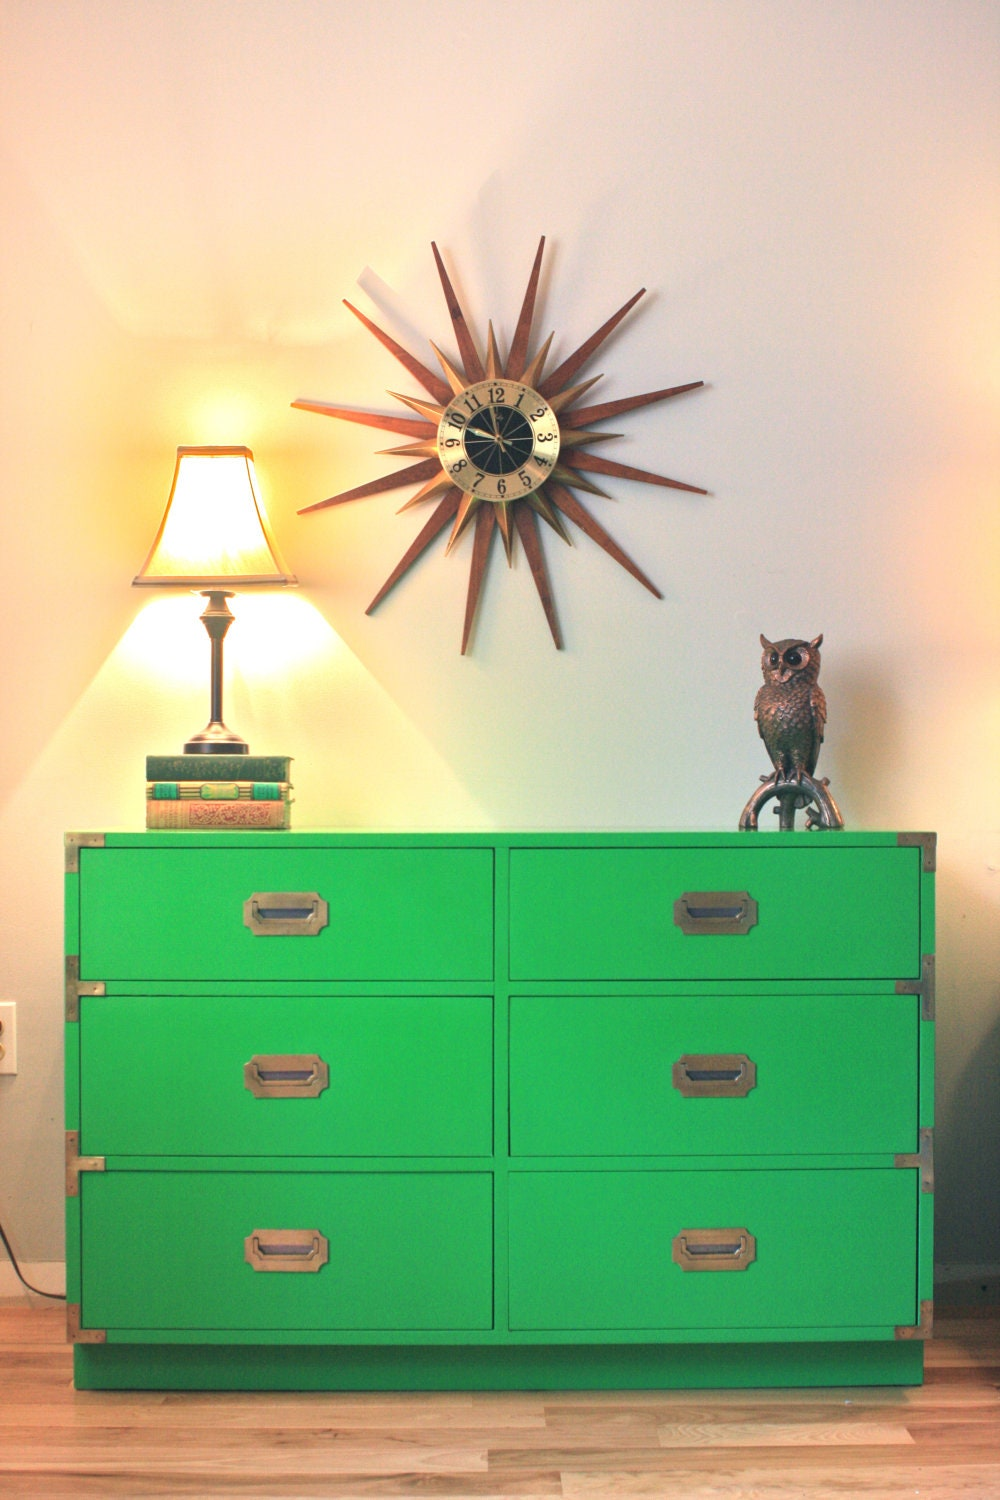 Campaign Furniture Pieces - Pictures of Past Work